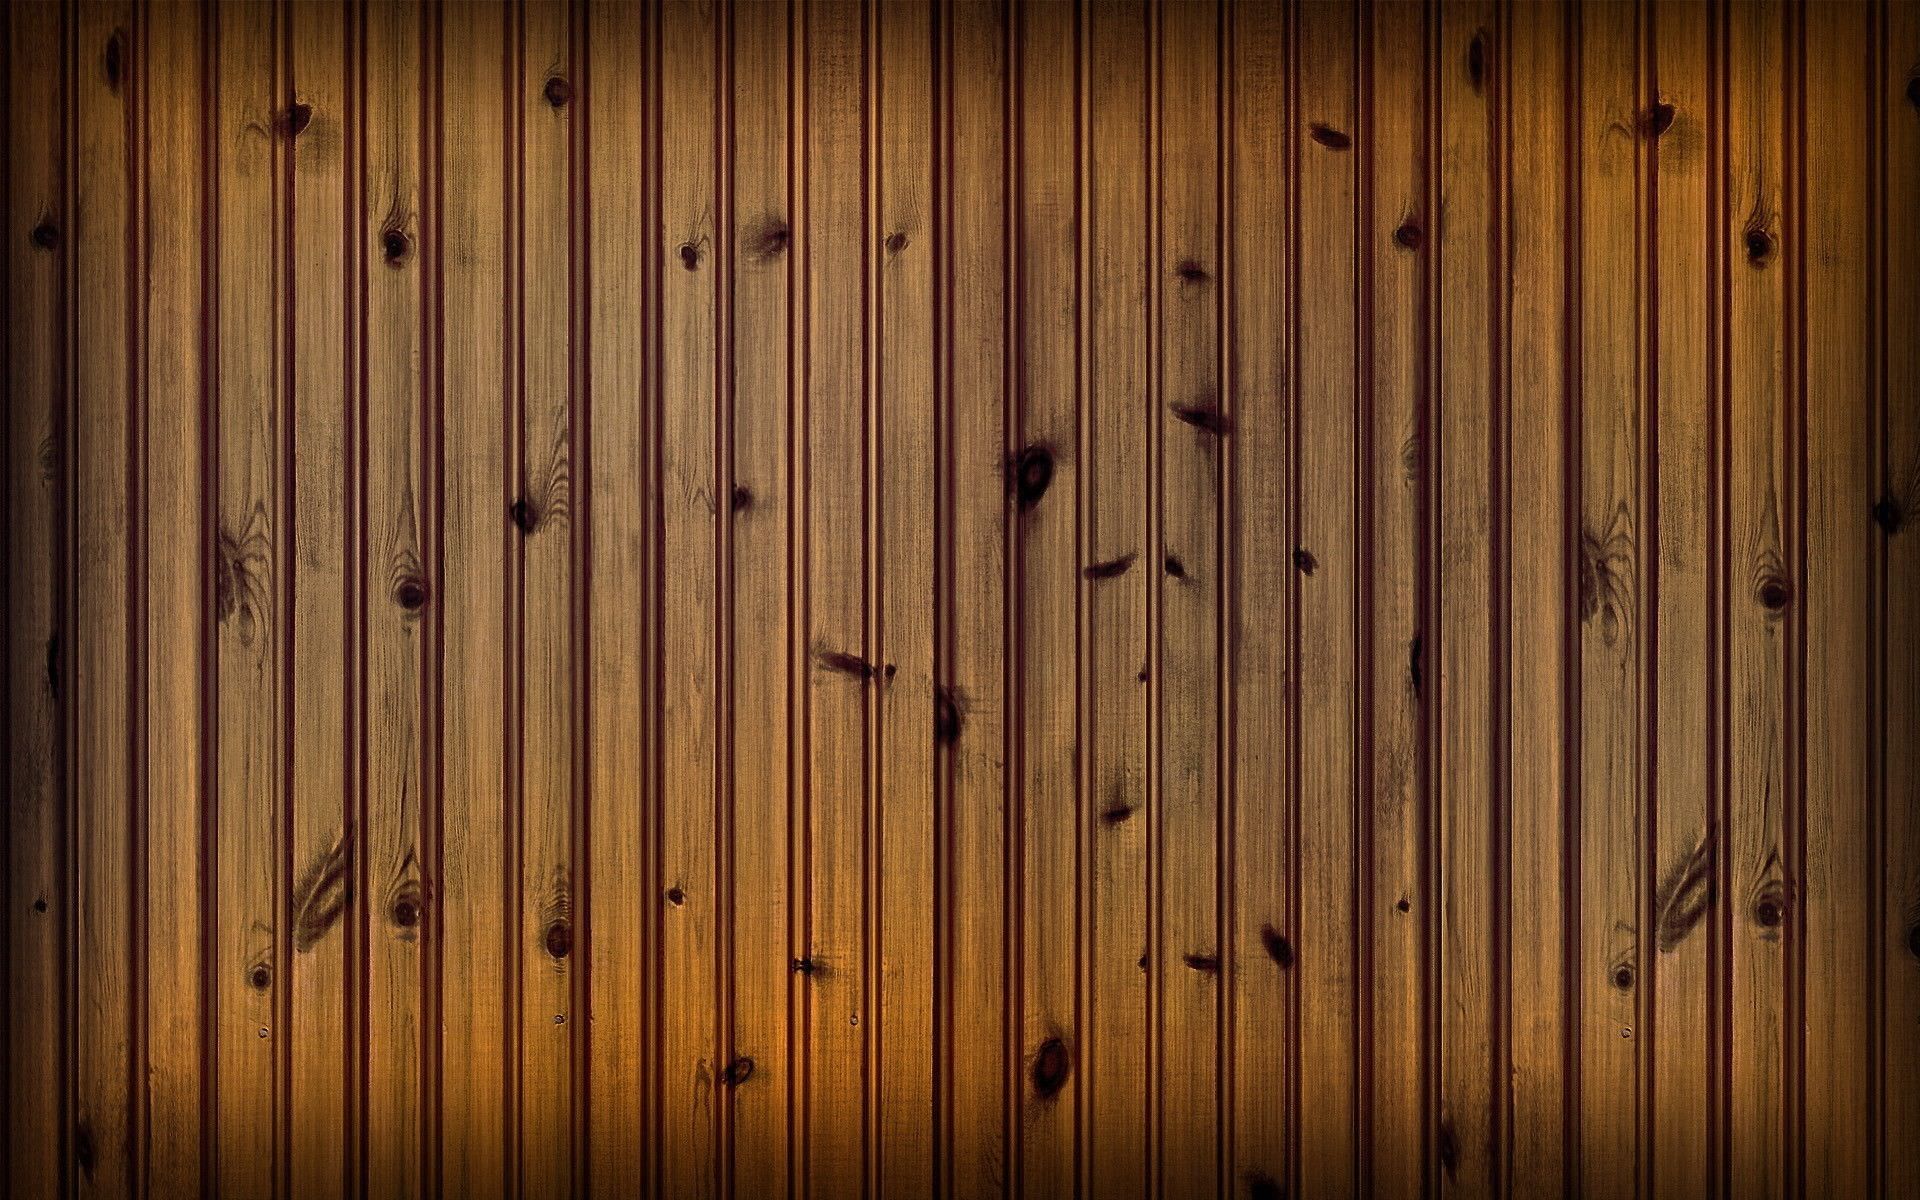 HD Wooden Background